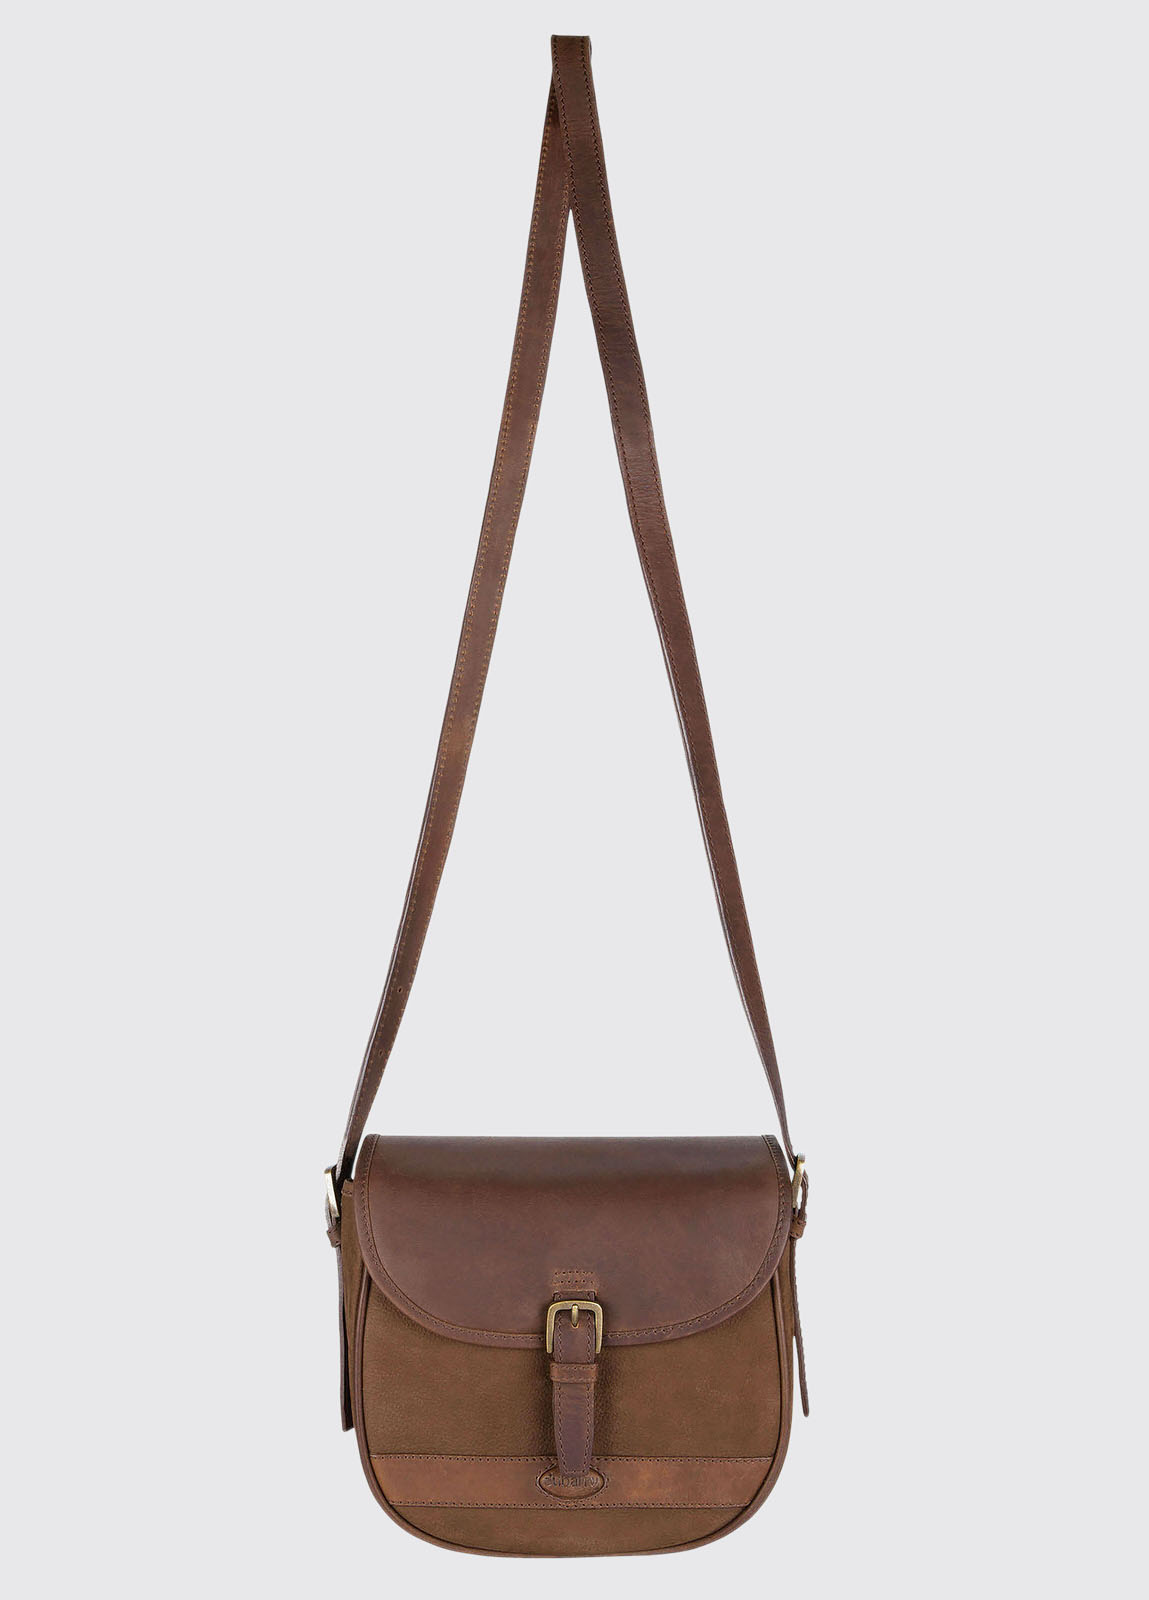 Clara Leather Saddle bag - Walnut